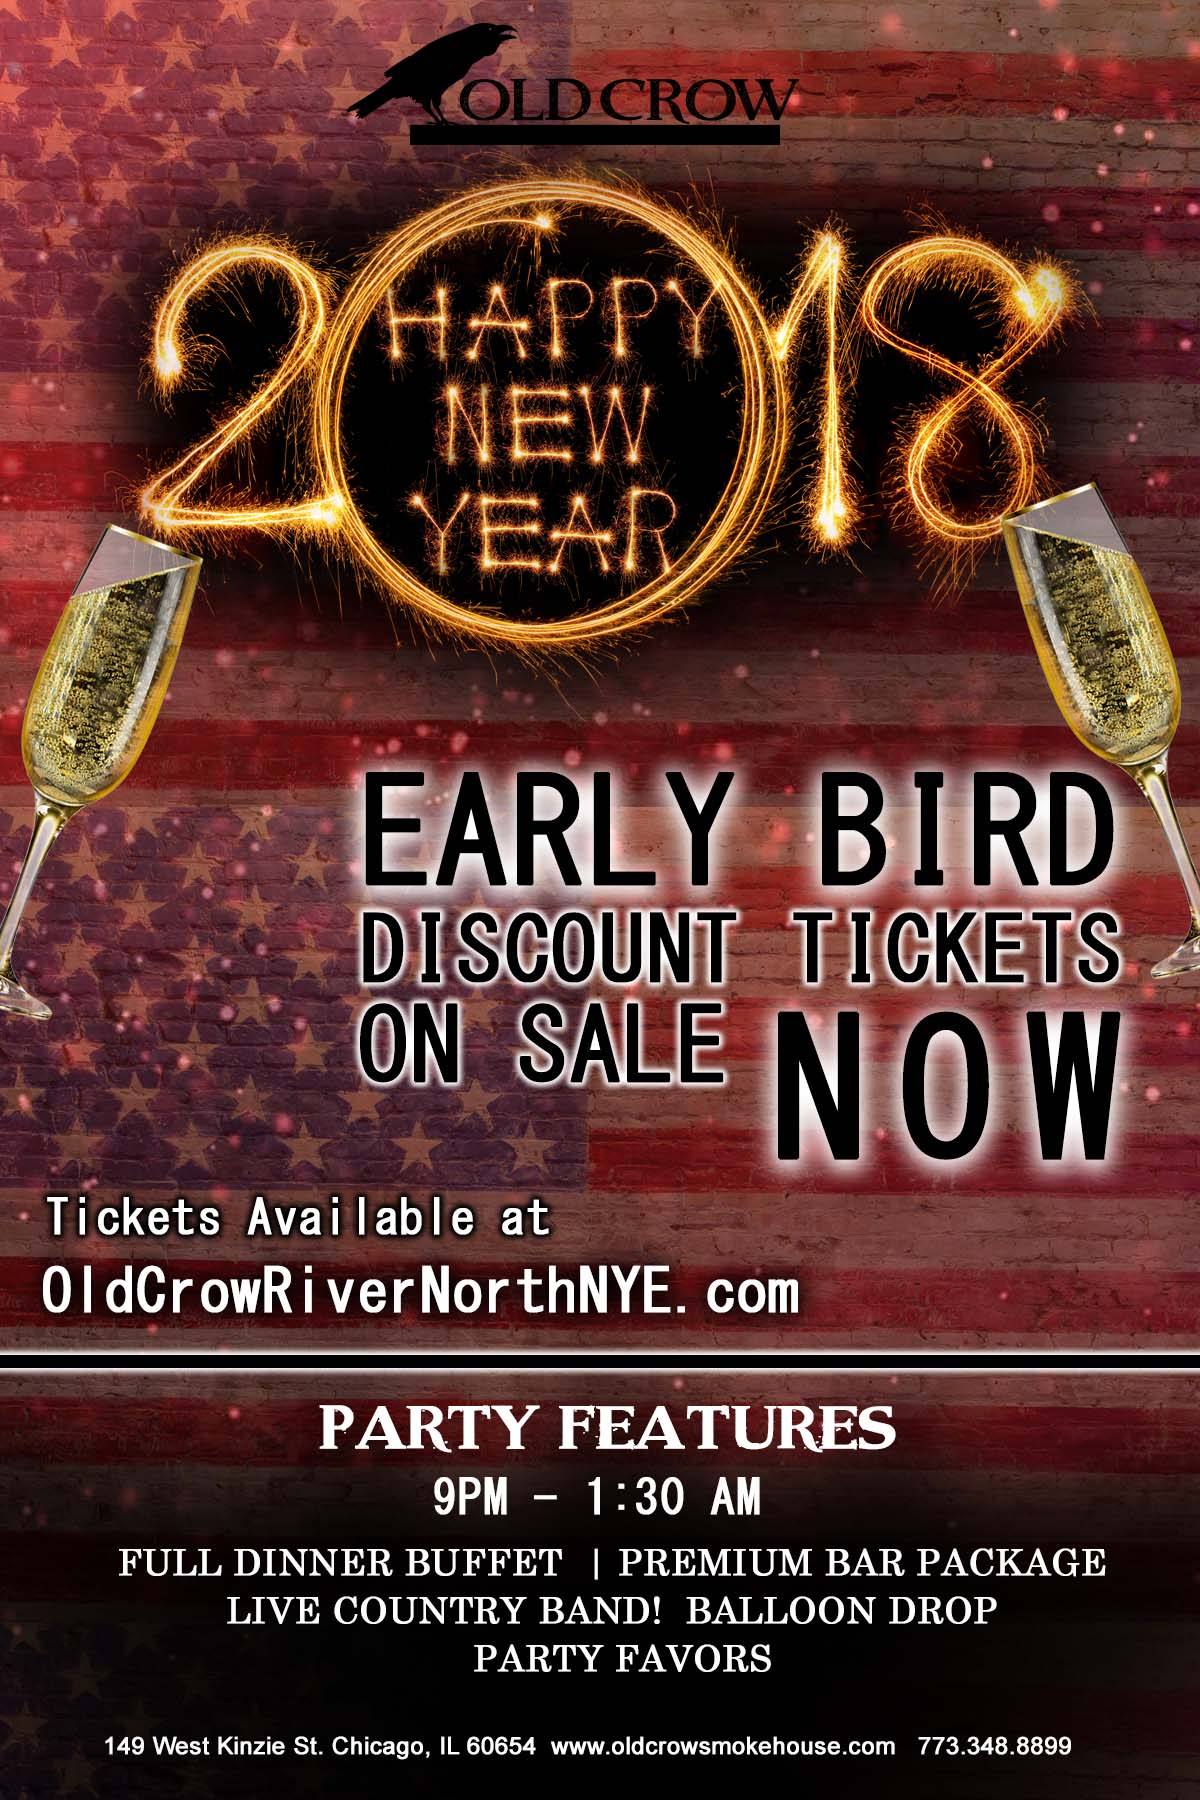 Old Crow Smokehouse River North New Year's Eve Party - Tickets include a Full Dinner Buffet, Premium Bar Package from 9pm-1:30am, Live Country Band, Balloon Drop and More!